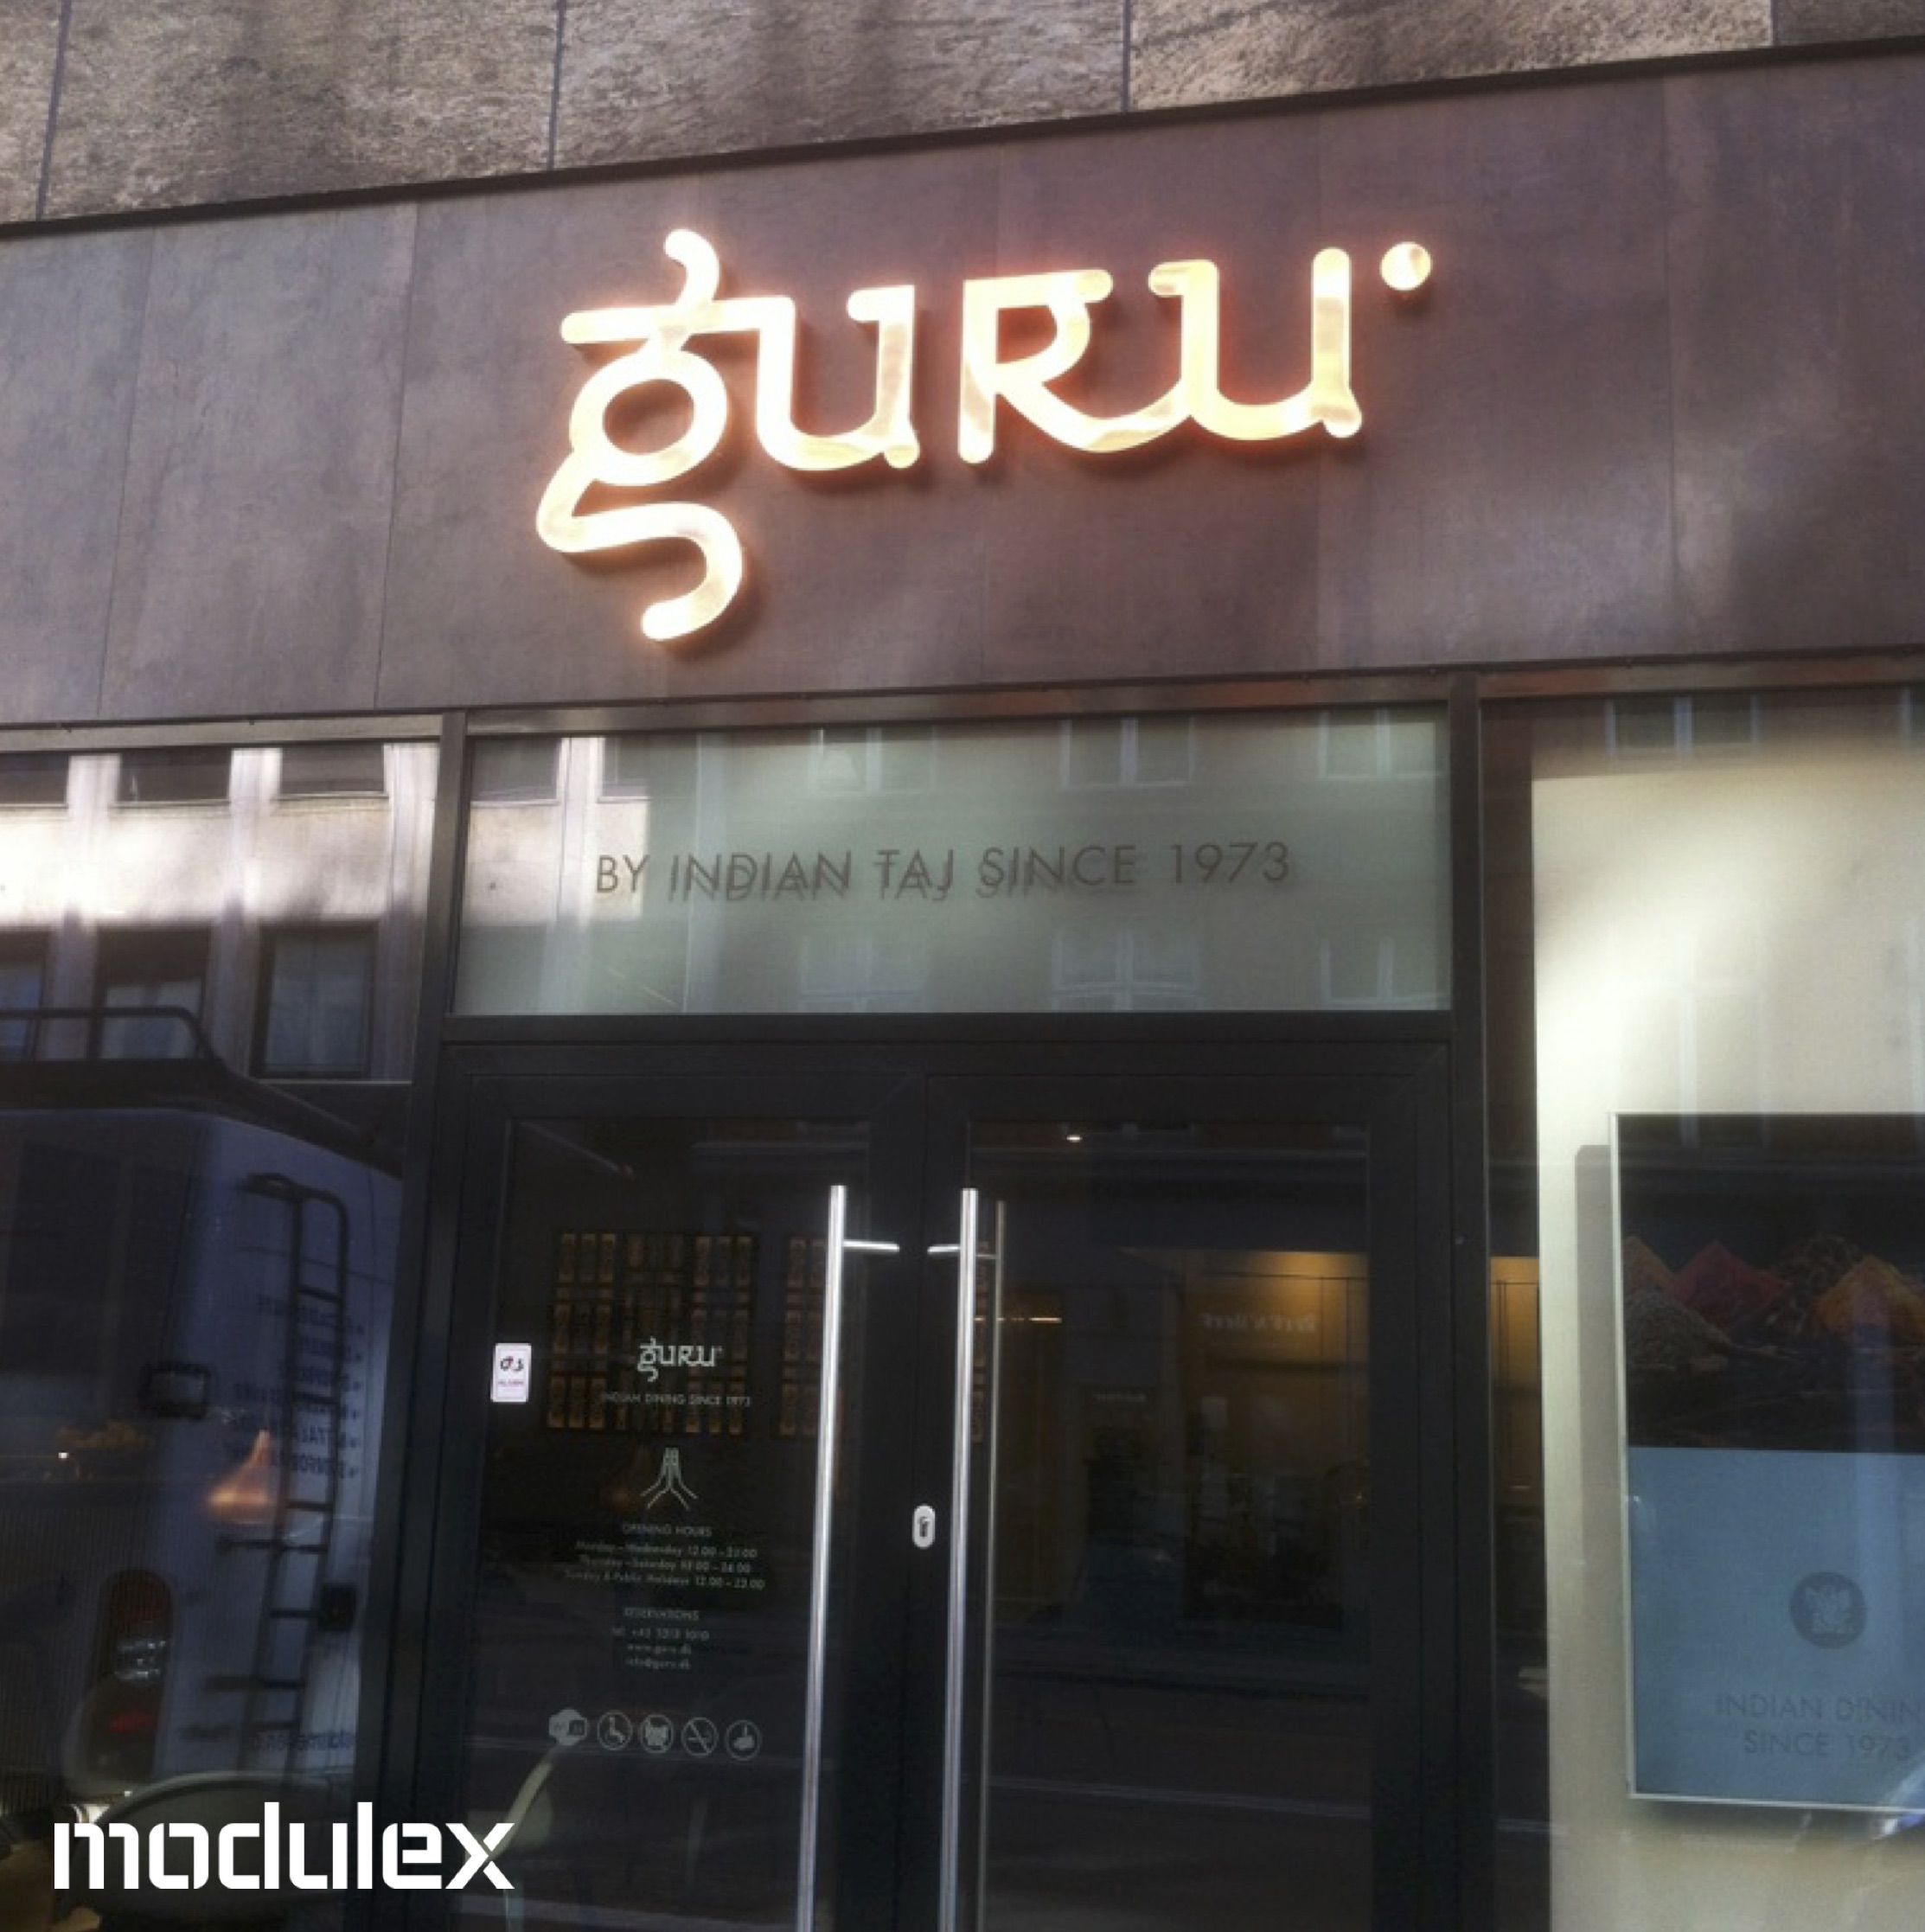 Looking At Some Of Our Lovely Facade Signage. Guru Is An